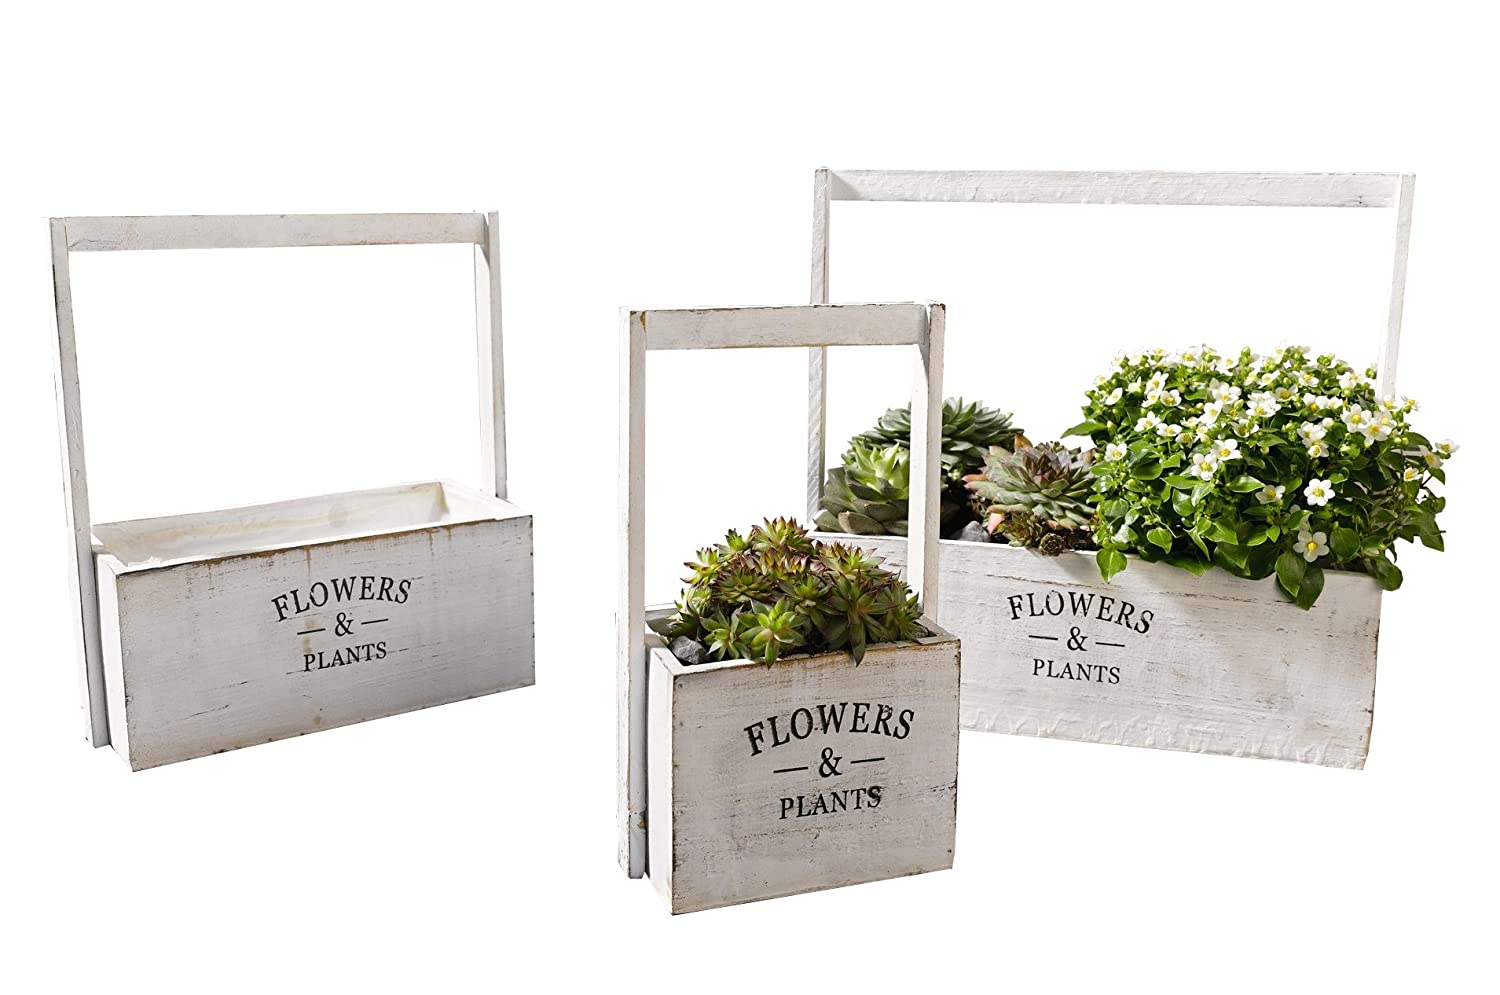 Flowers Plants Painted White Planters for Garden or Patio, Set of Three Product SKU PL221628